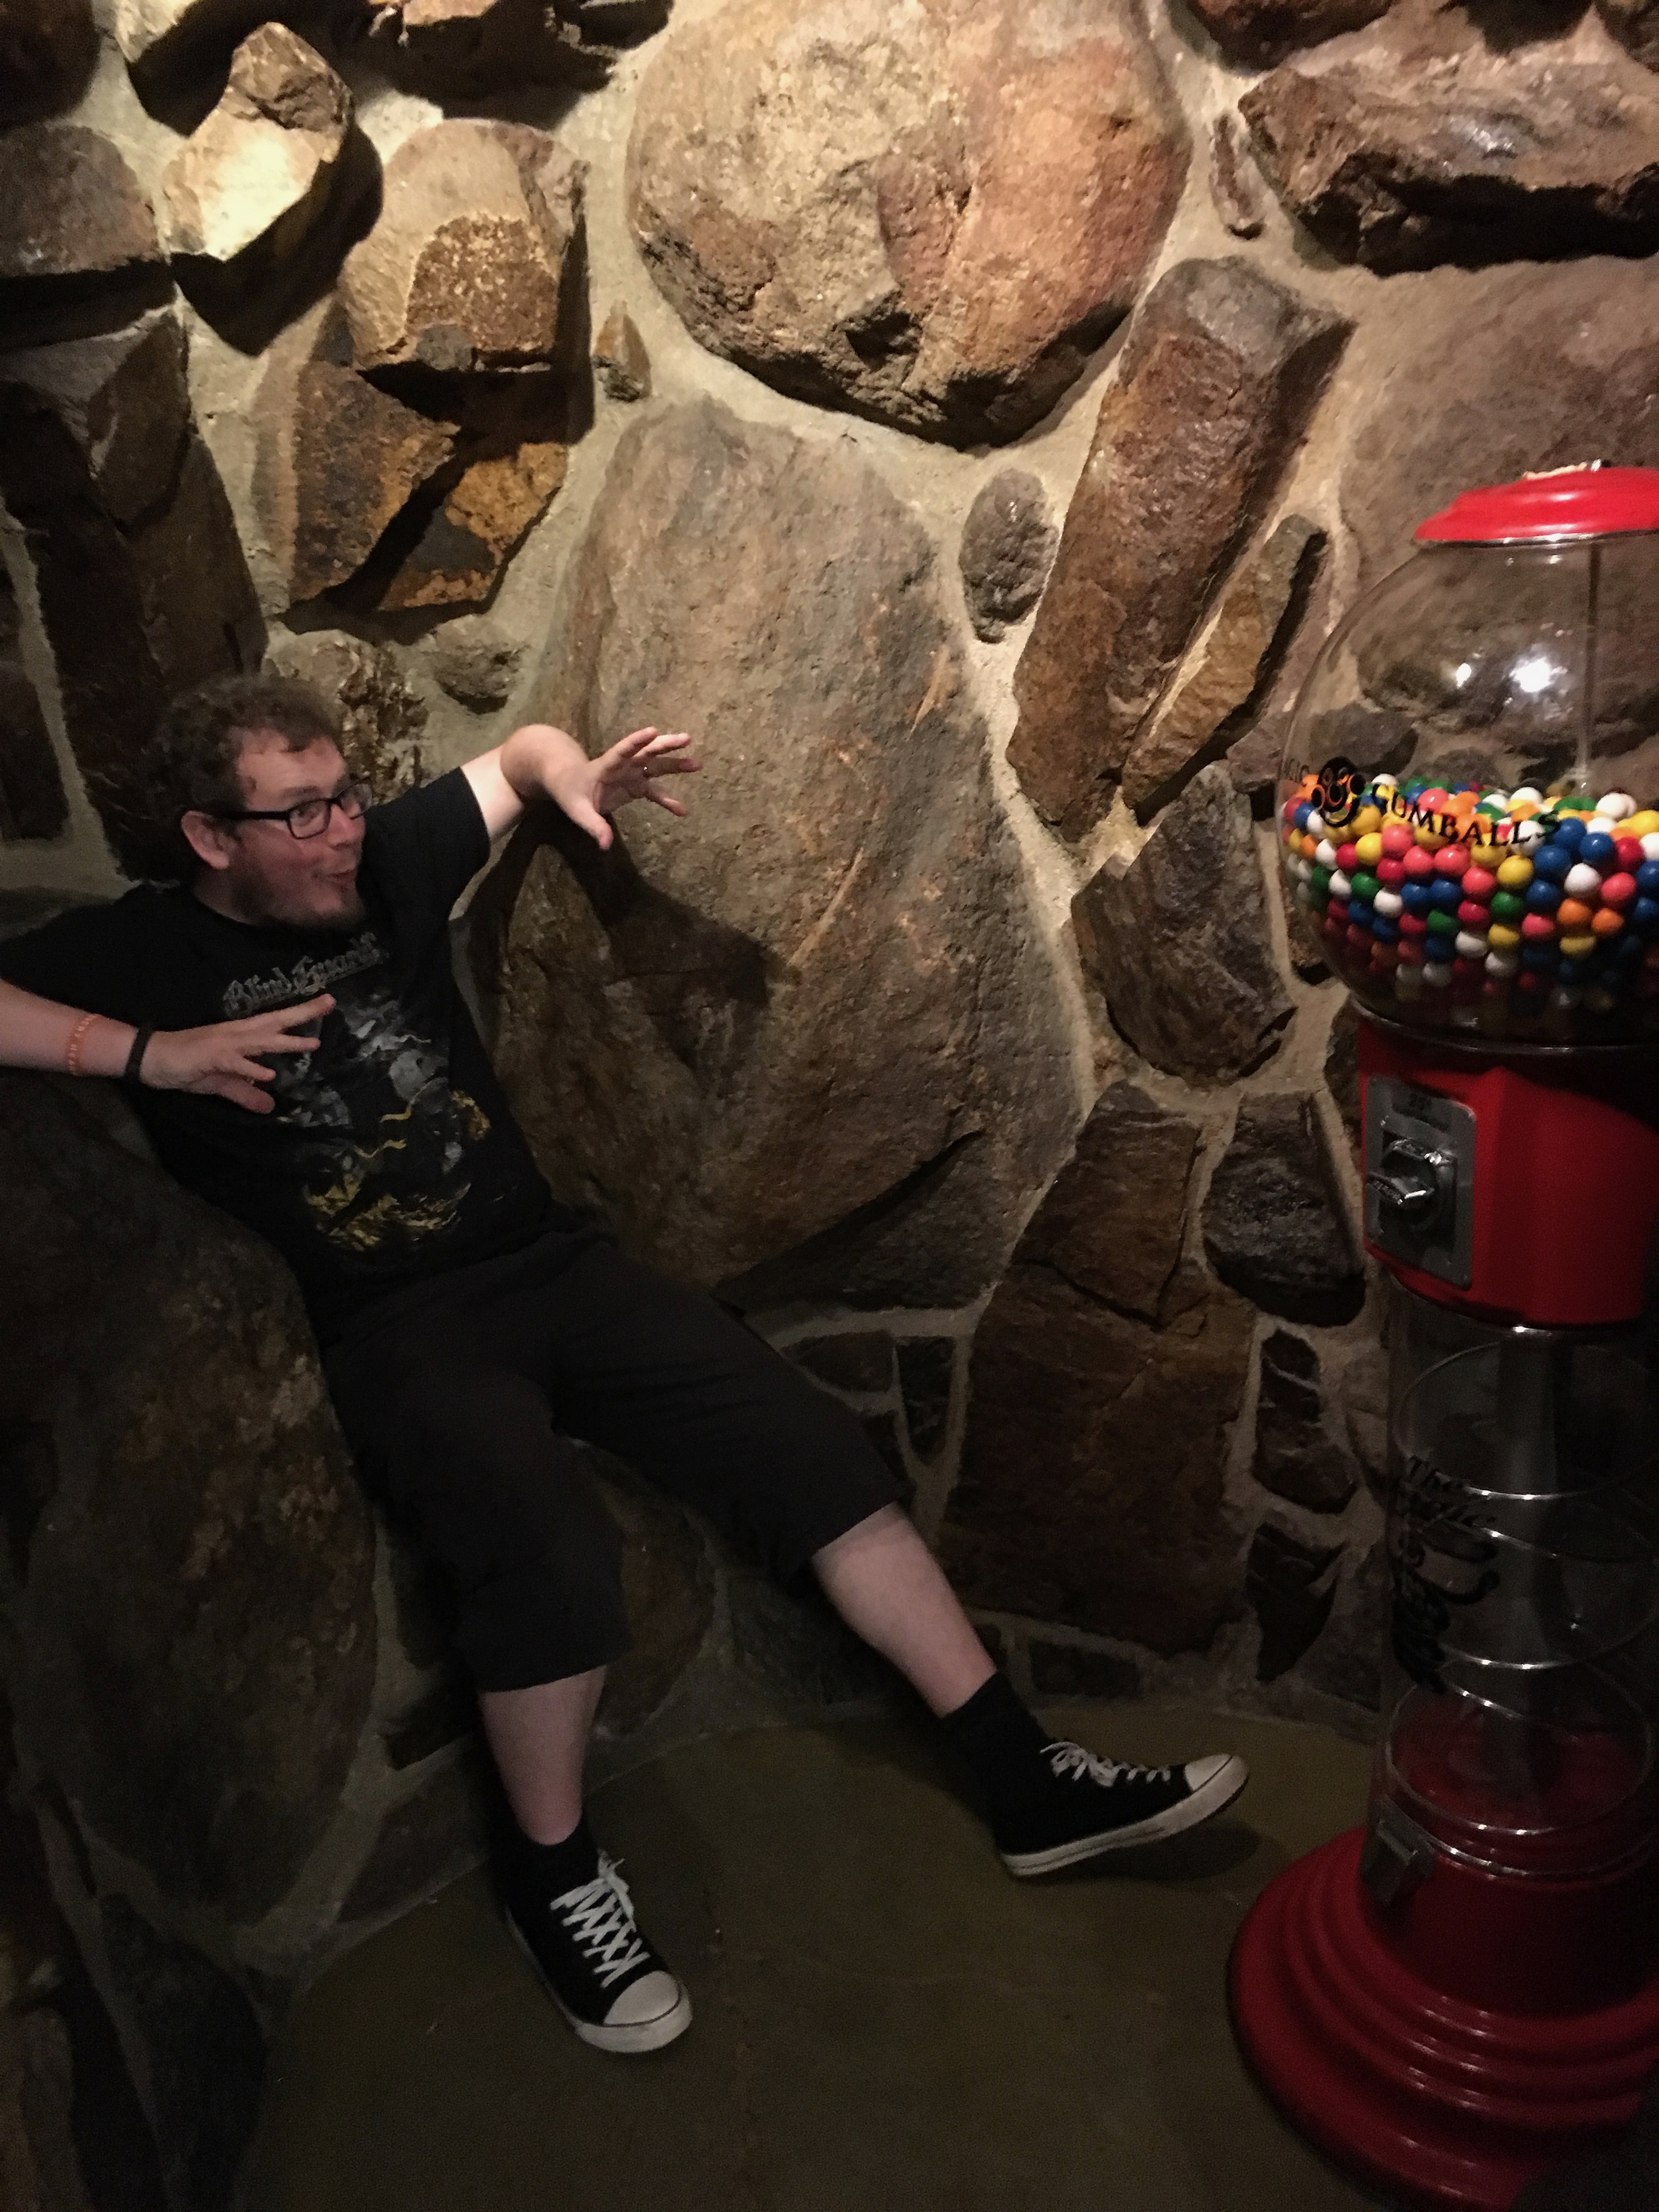 Madonna Inn - candy cavern